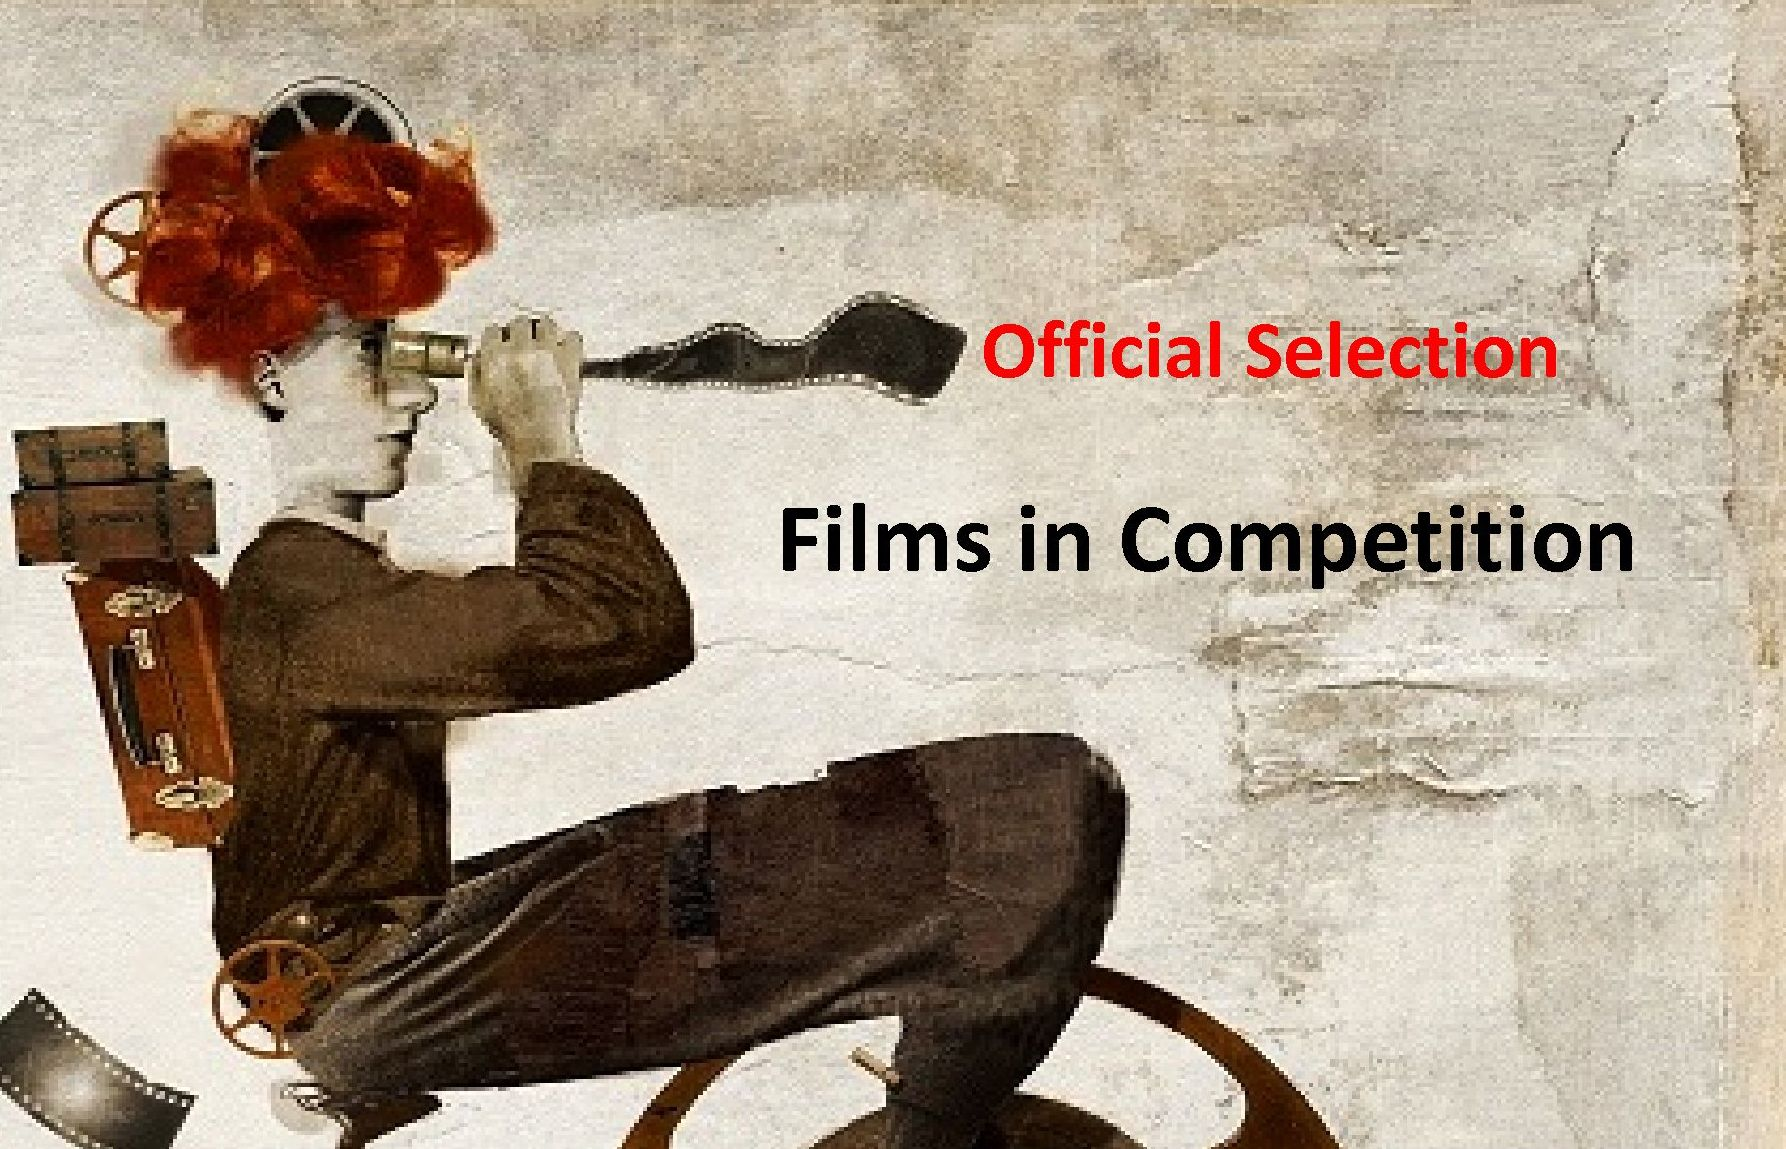 Films in competition